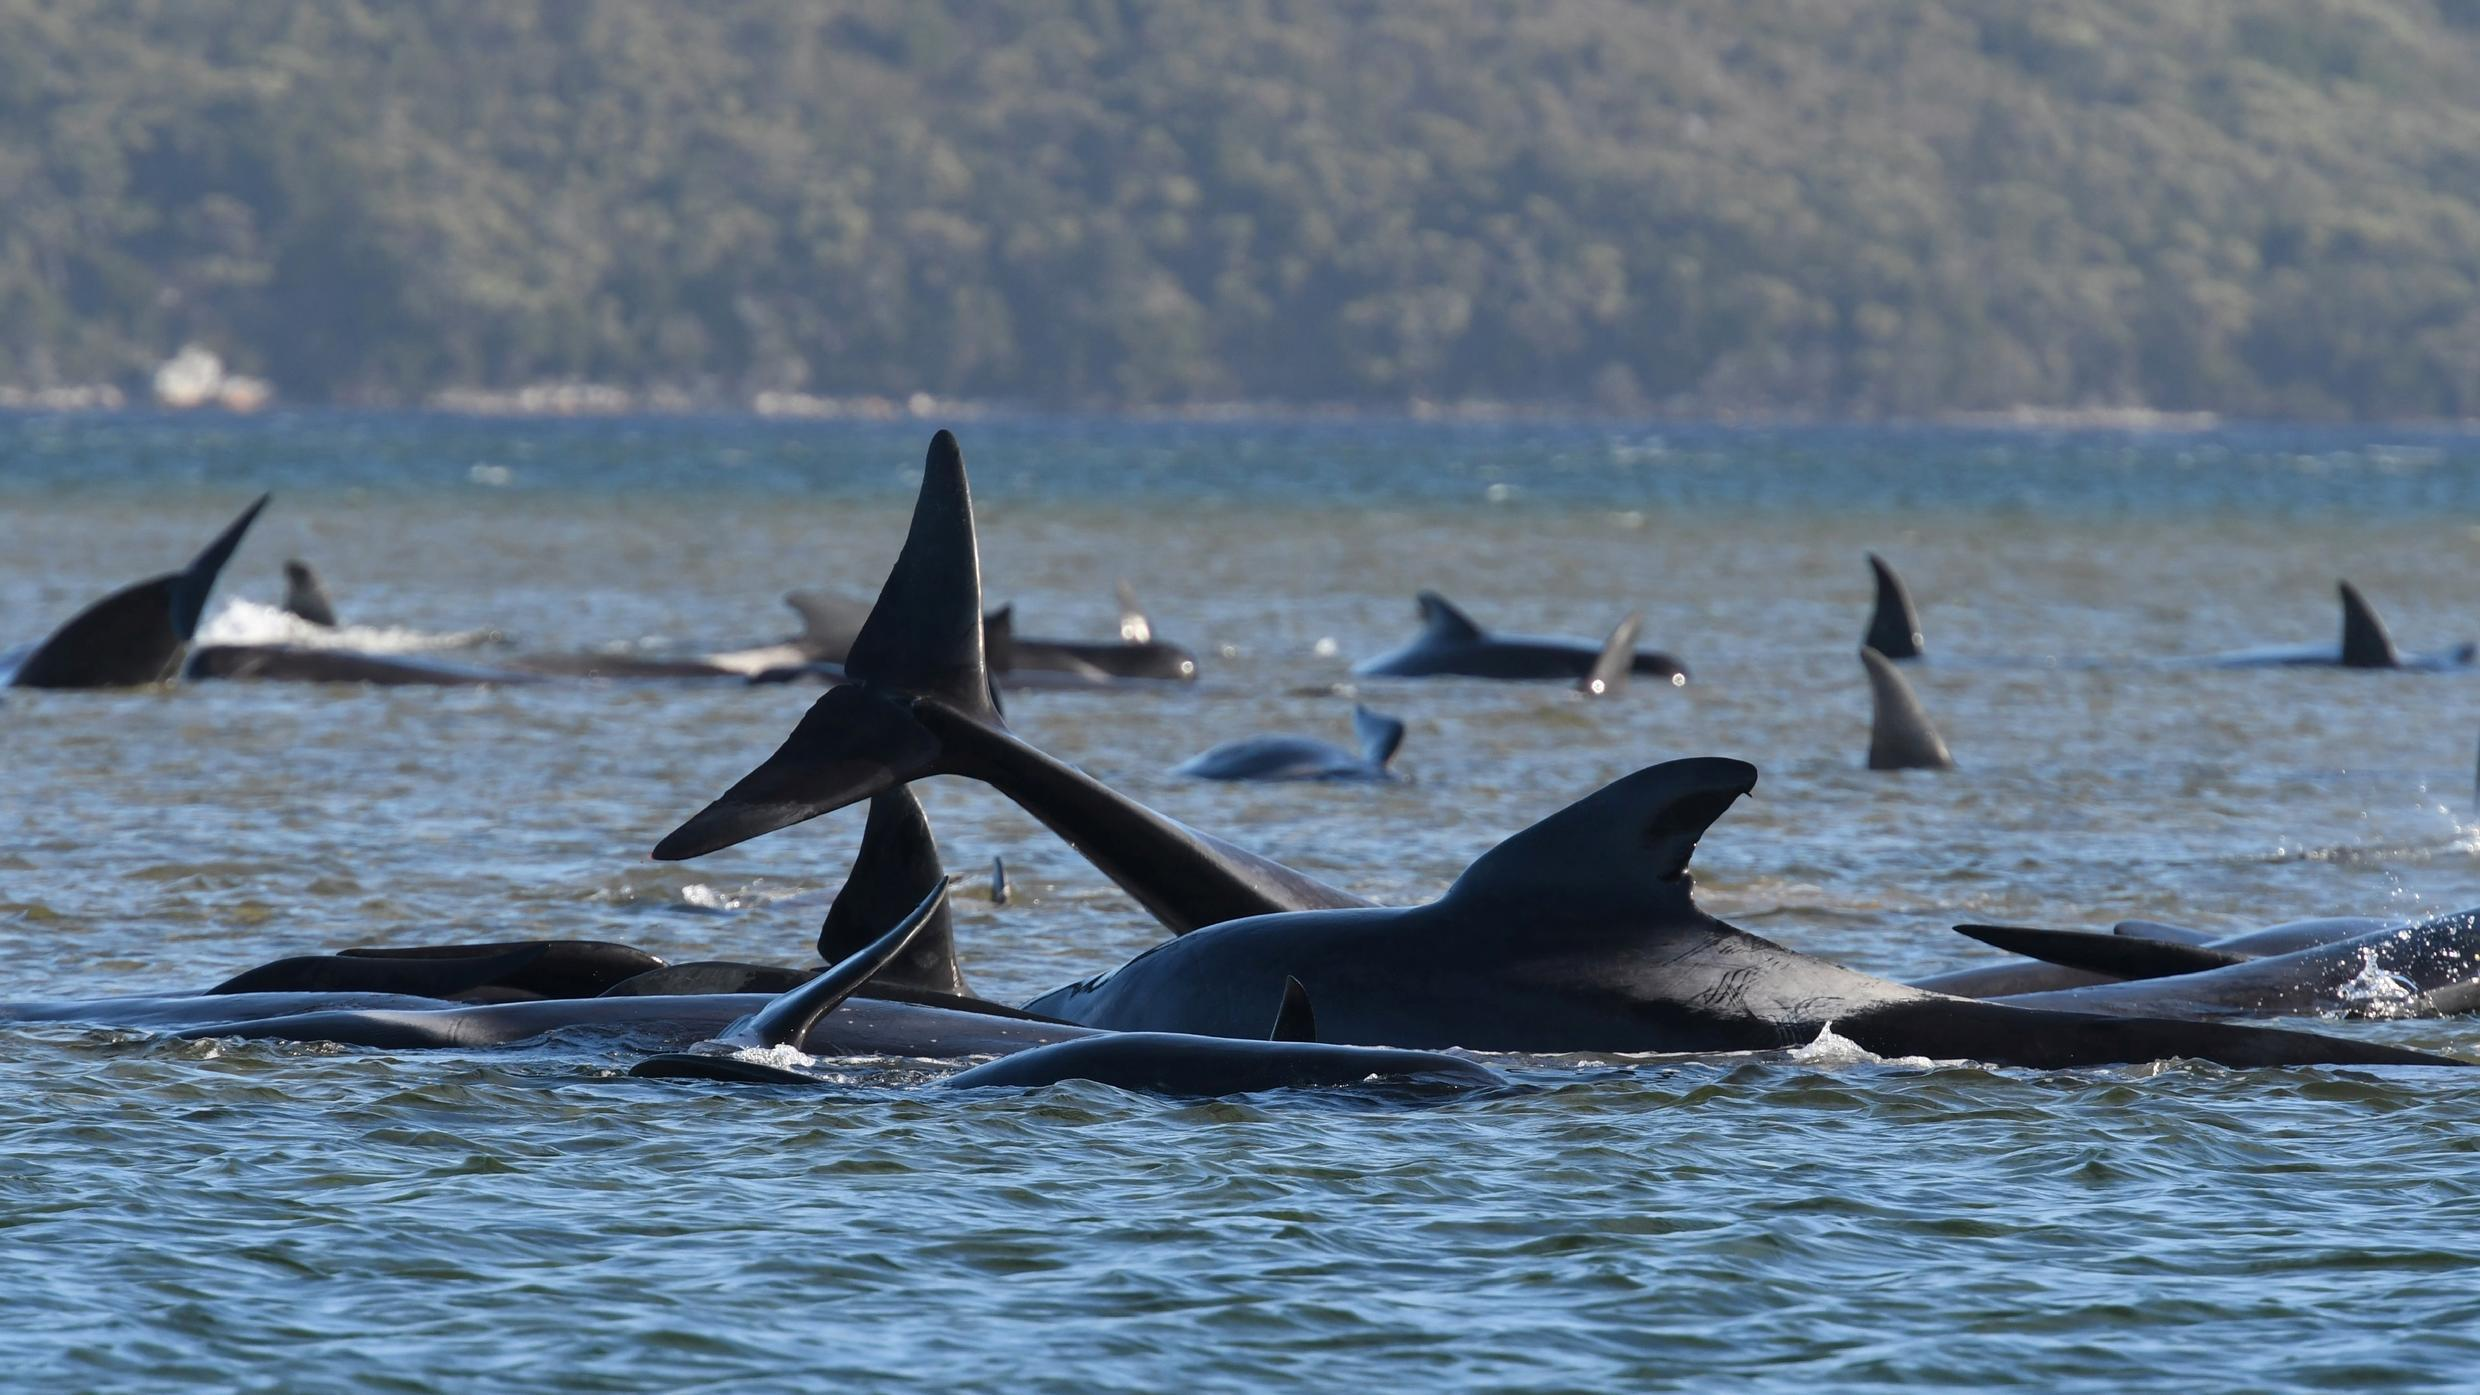 A pod of pilot whales, some 500 strong, trapped on the western shore of Tasmania.